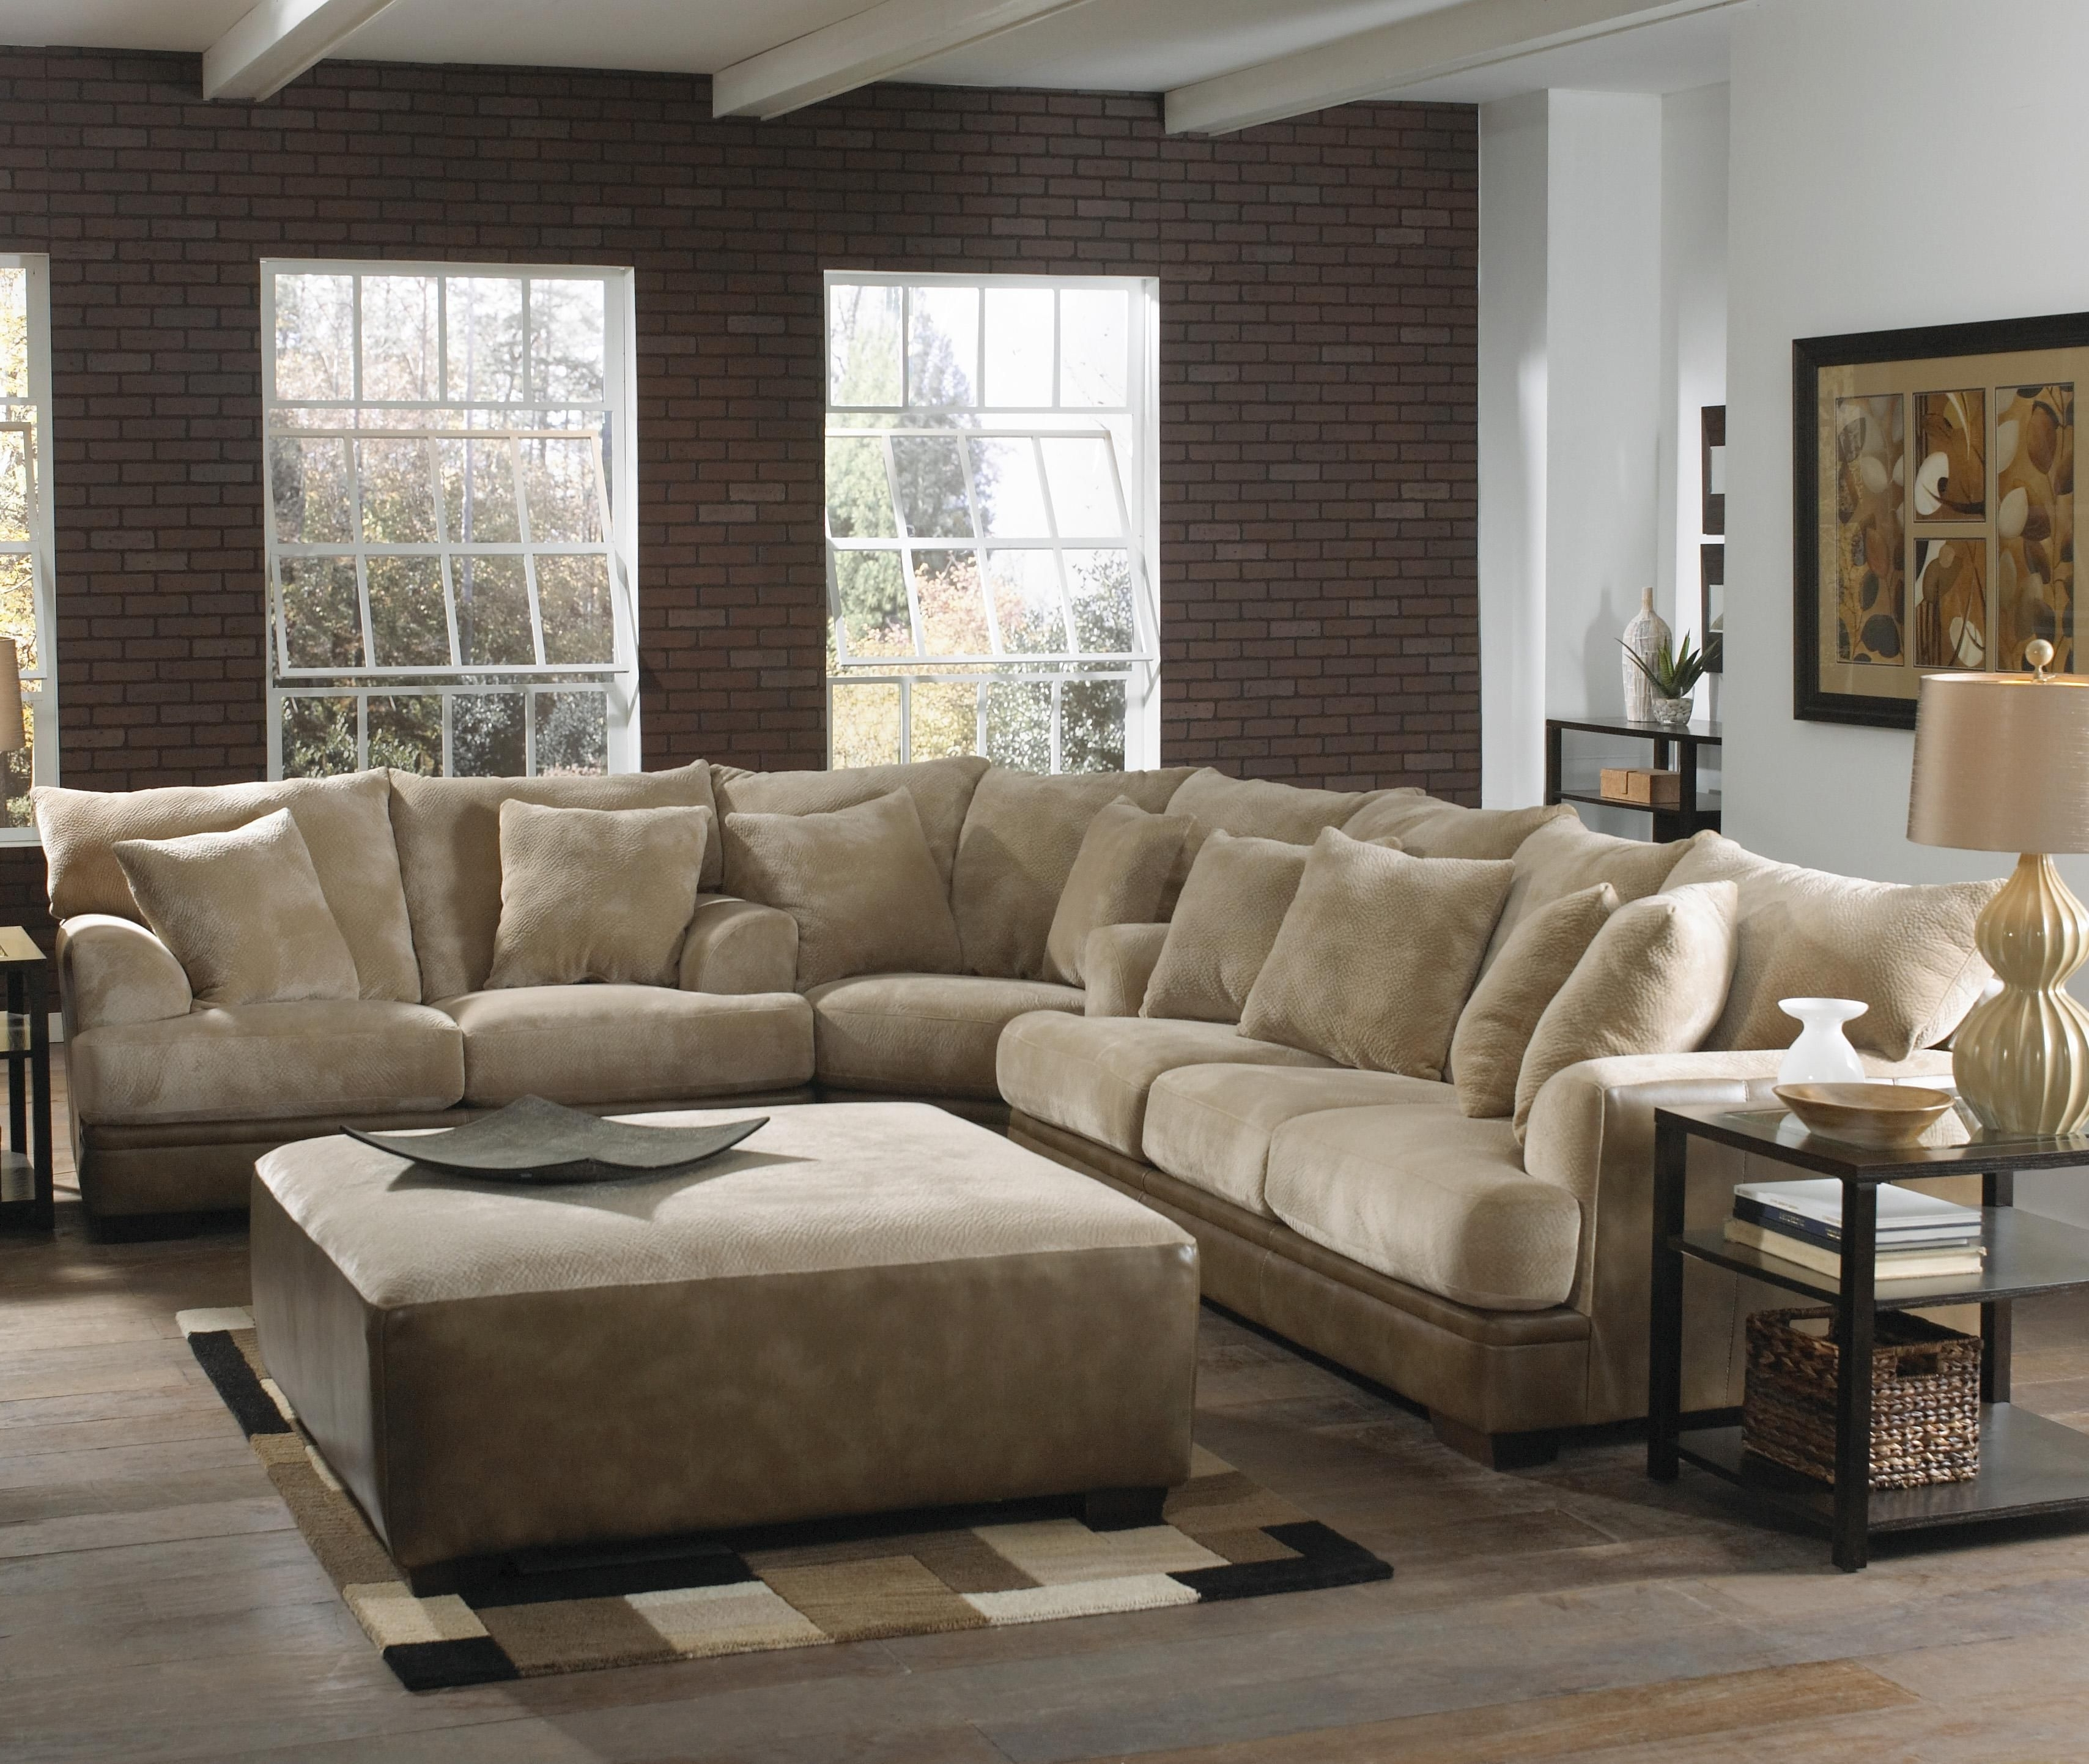 Well Known Gainesville Fl Sectional Sofas For Barkley Large L Shaped Sectional Sofa With Right Side Loveseat (Gallery 19 of 20)